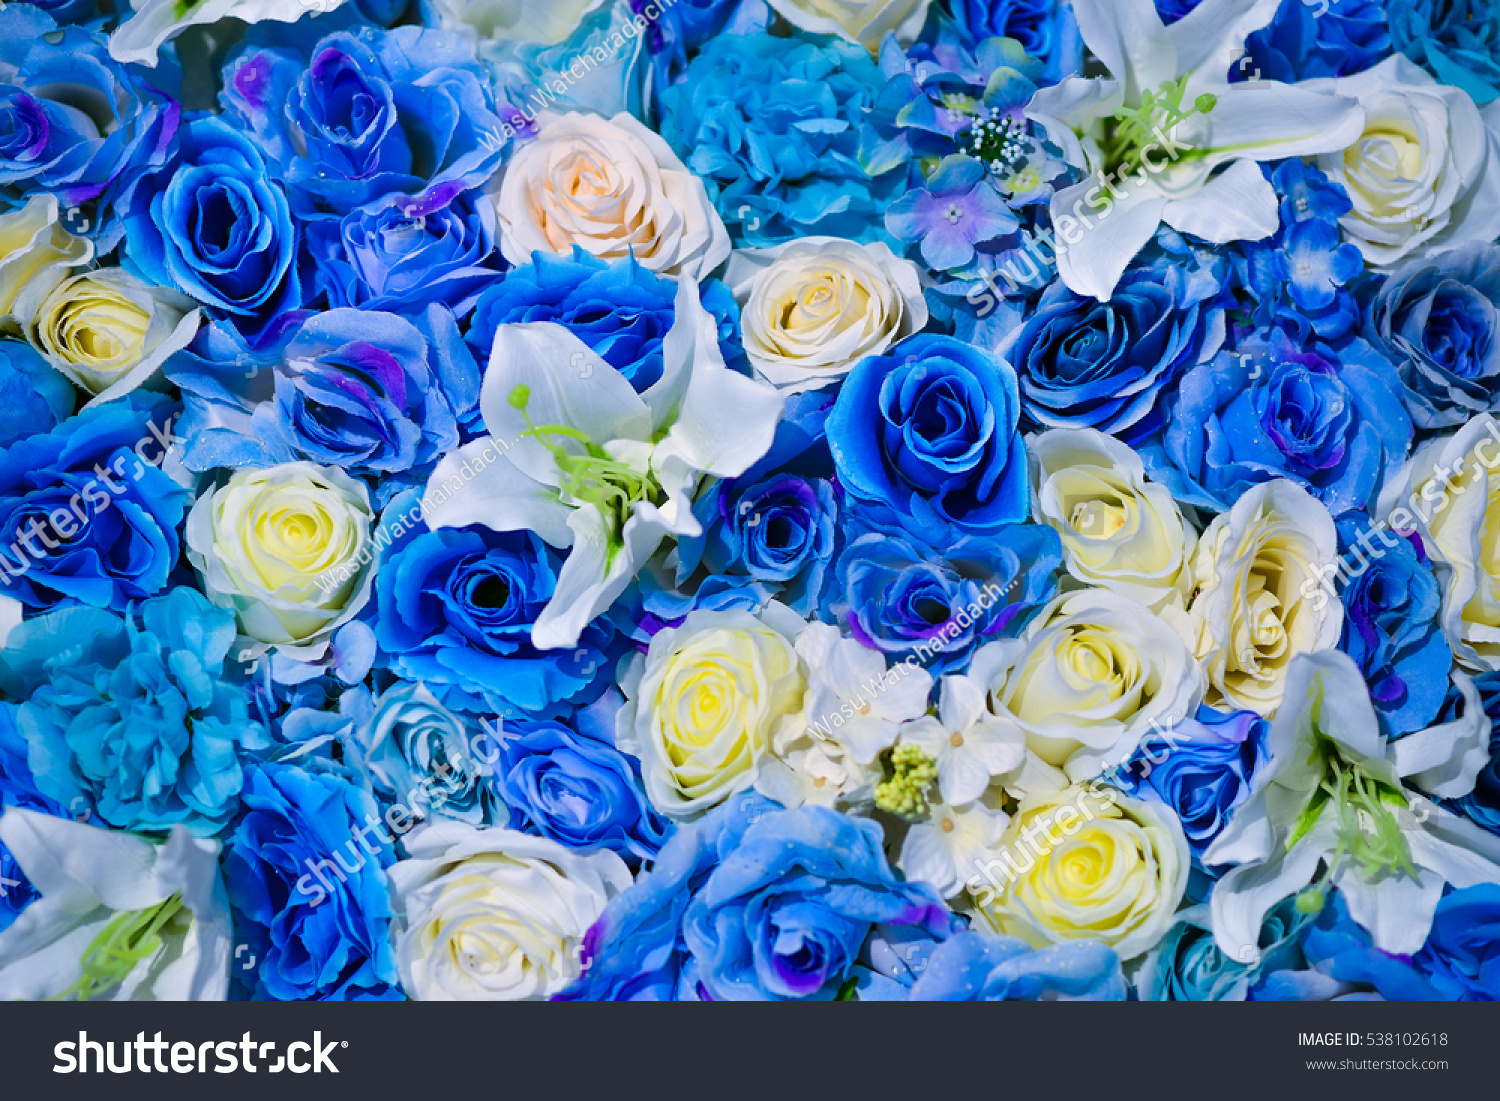 Beautiful flowers wall background blue white stock photo 538102618 beautiful flowers wall background with blue and white artificial roses dhlflorist Image collections